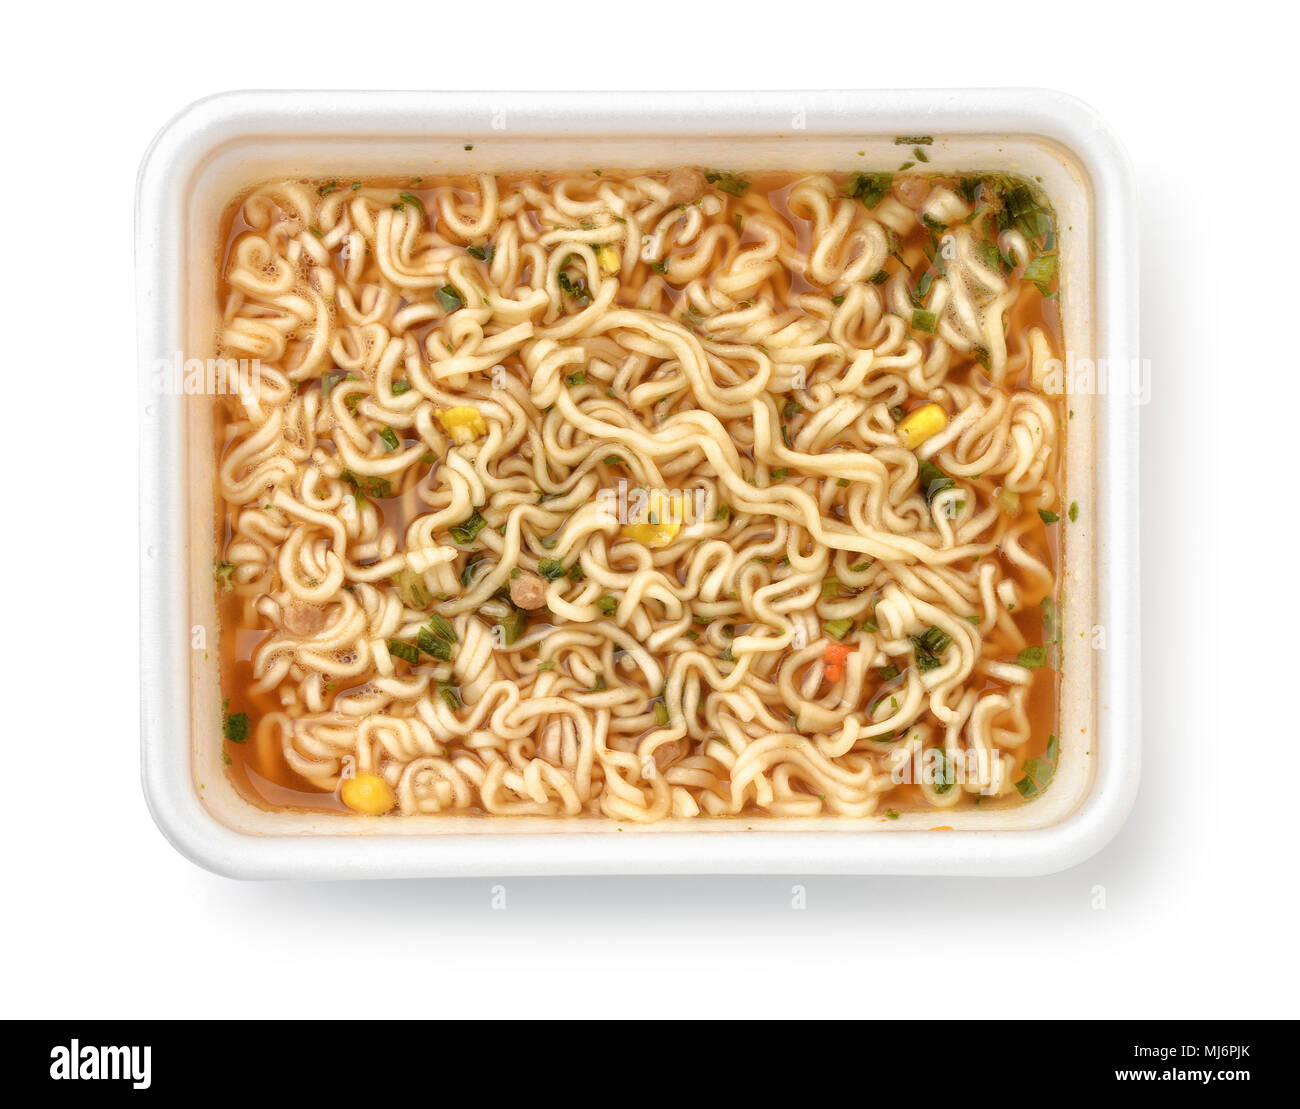 Top view of foam container full of instant noodles isolated on white - Stock Image